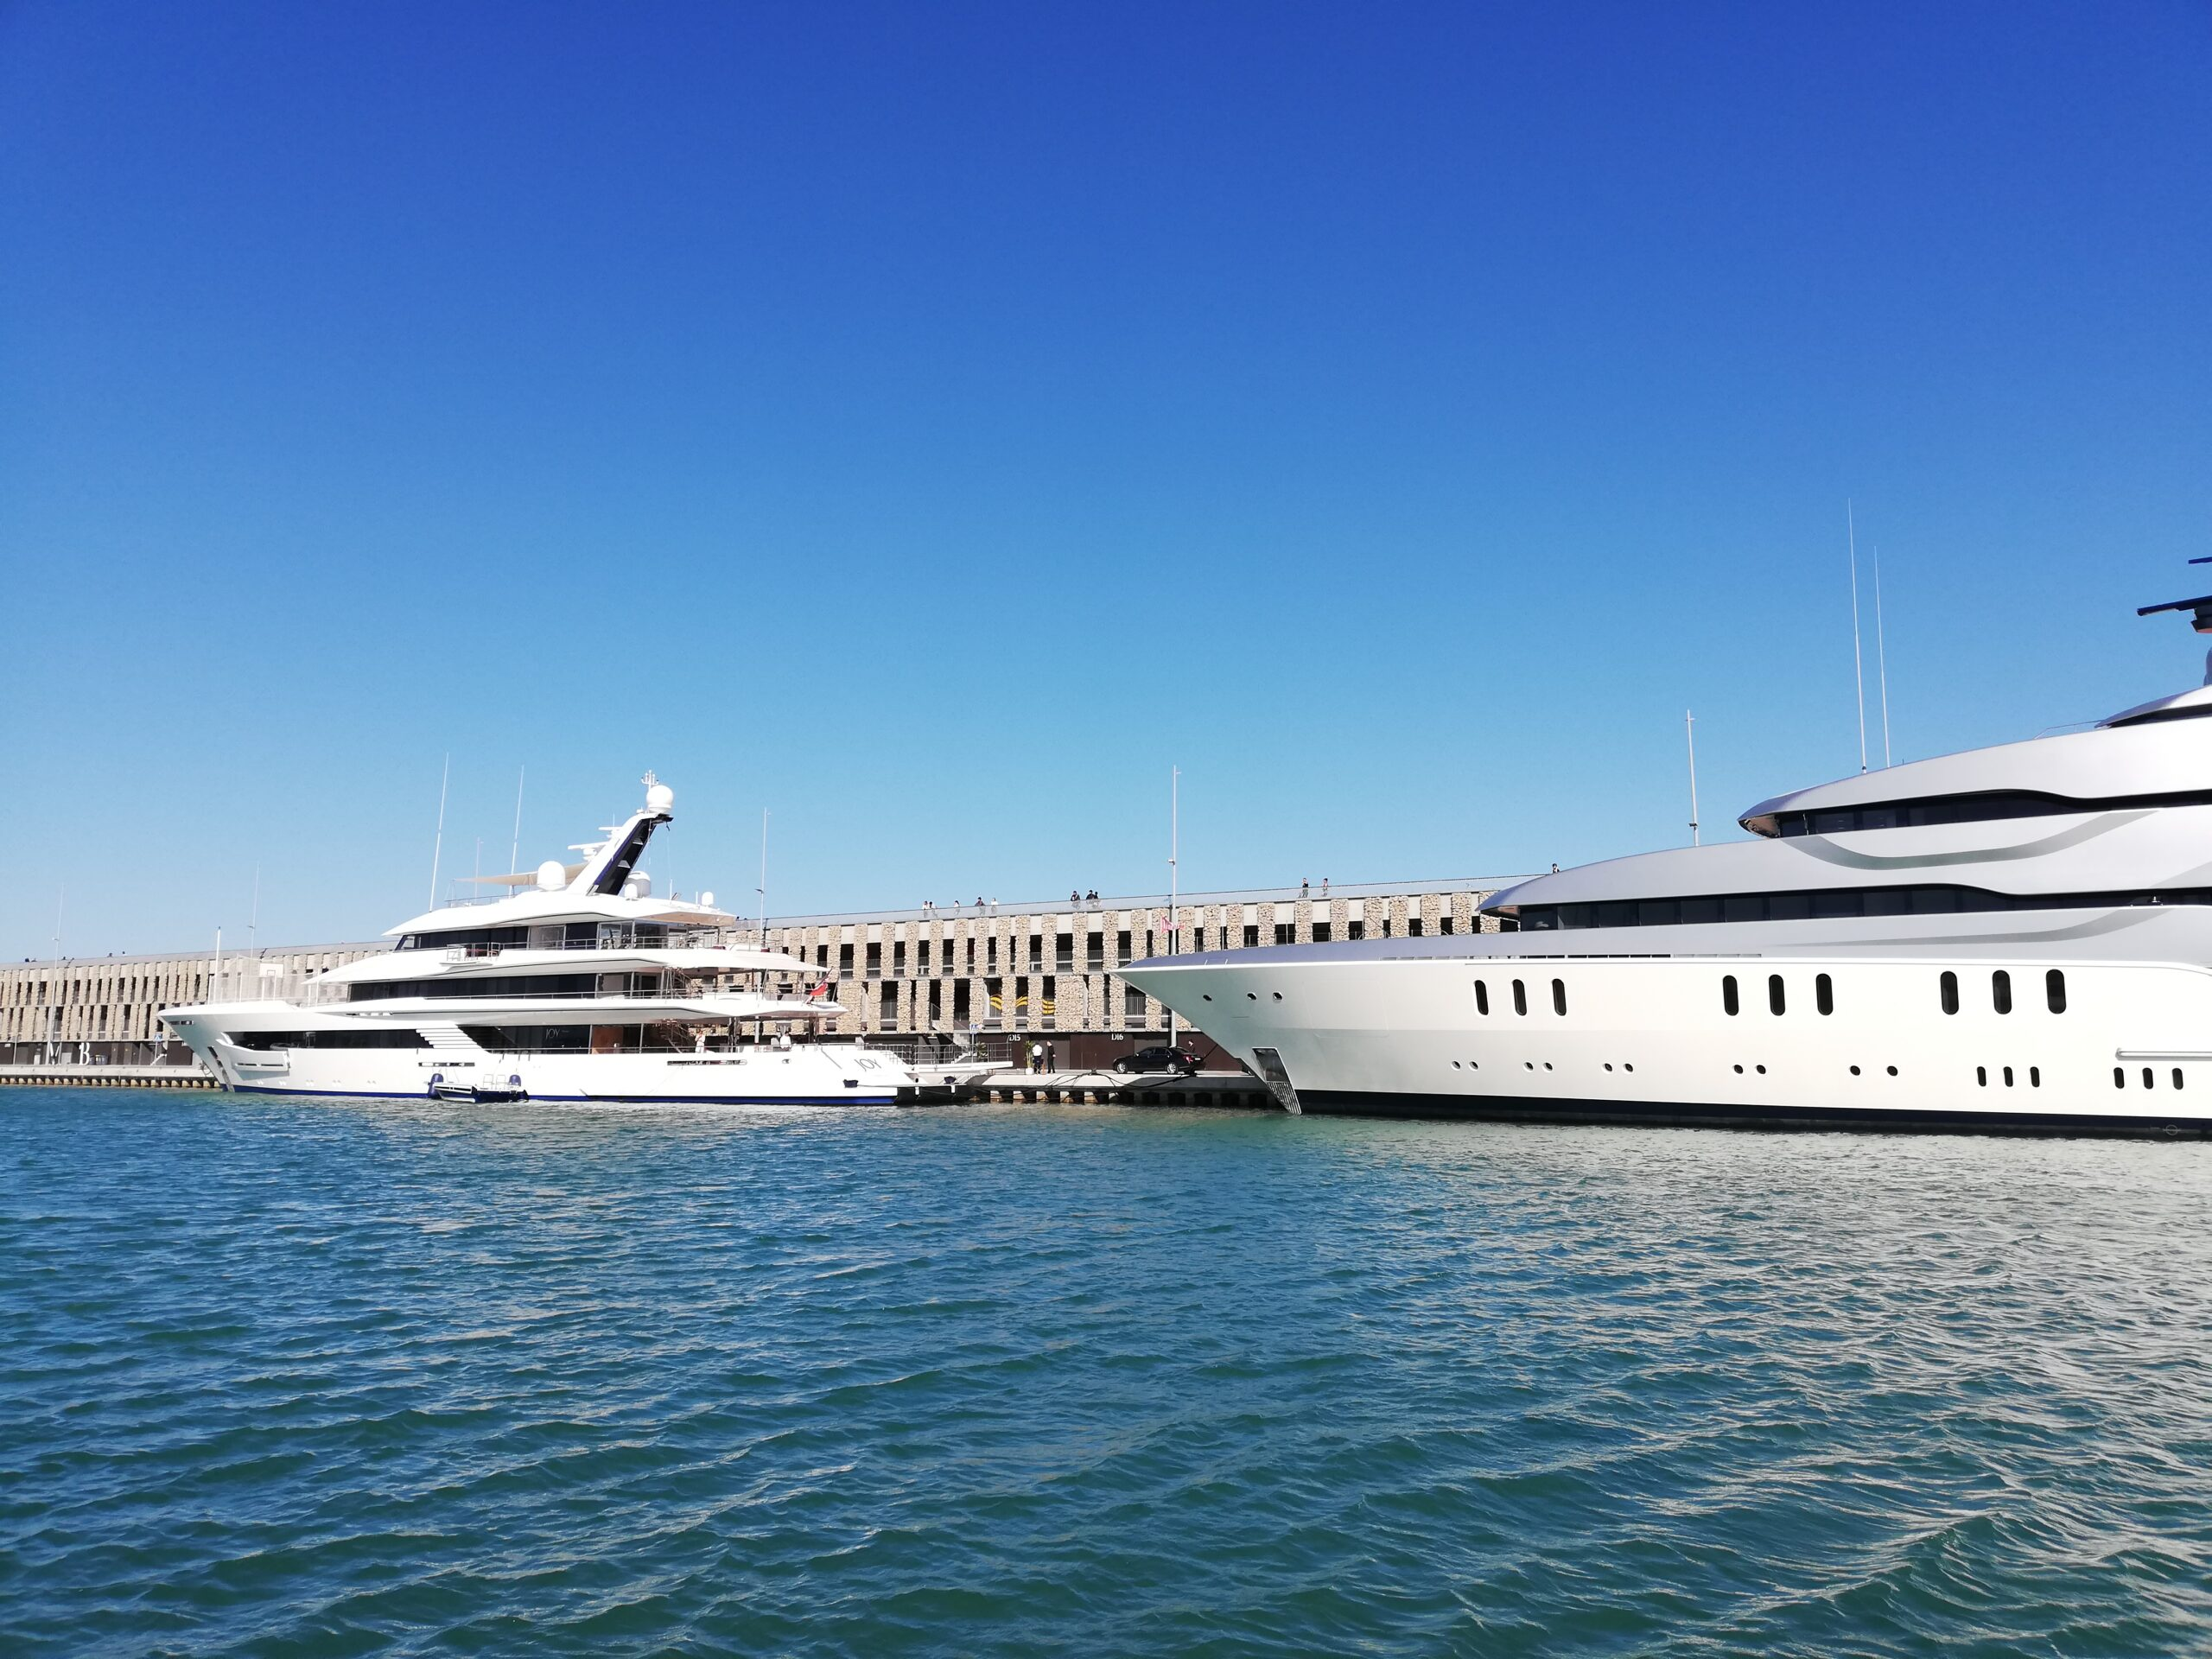 Barcelona is the Superyacht Destination according the Wealth Report 2021